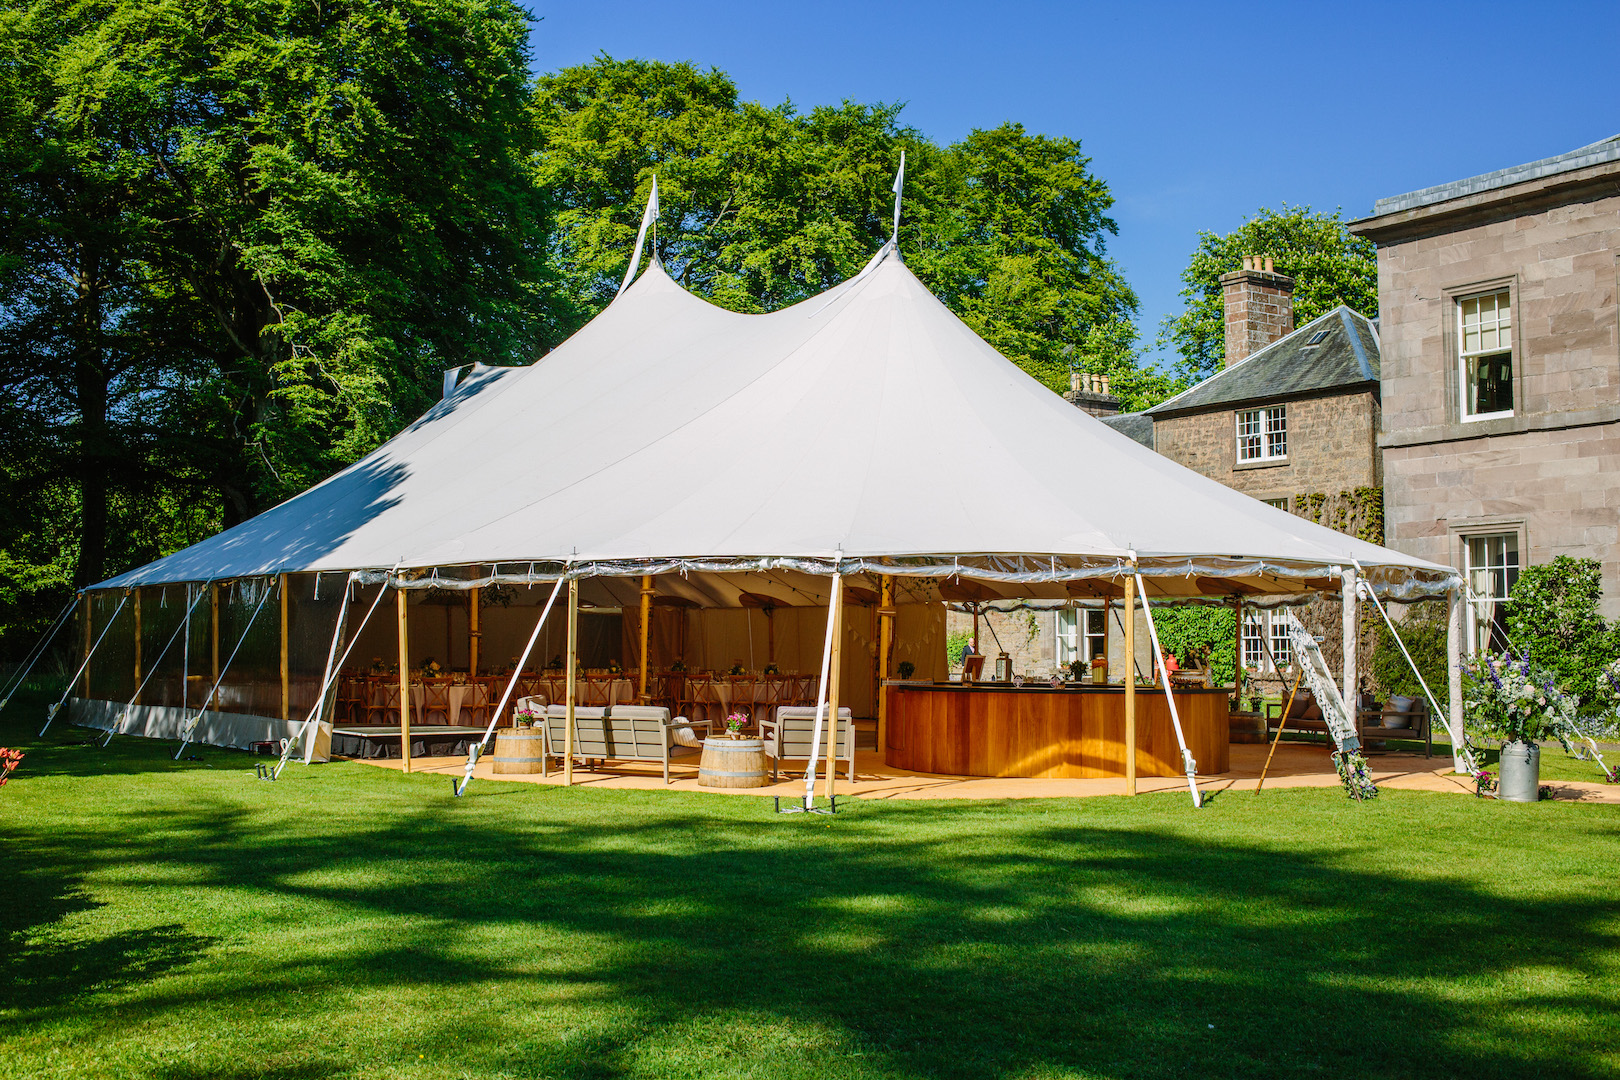 Alice & Alex's PapaKåta Sperry Wedding at Dunsinnan House, Scotland- Sperry Tent Exterior by Eilidh Sutherland Photography